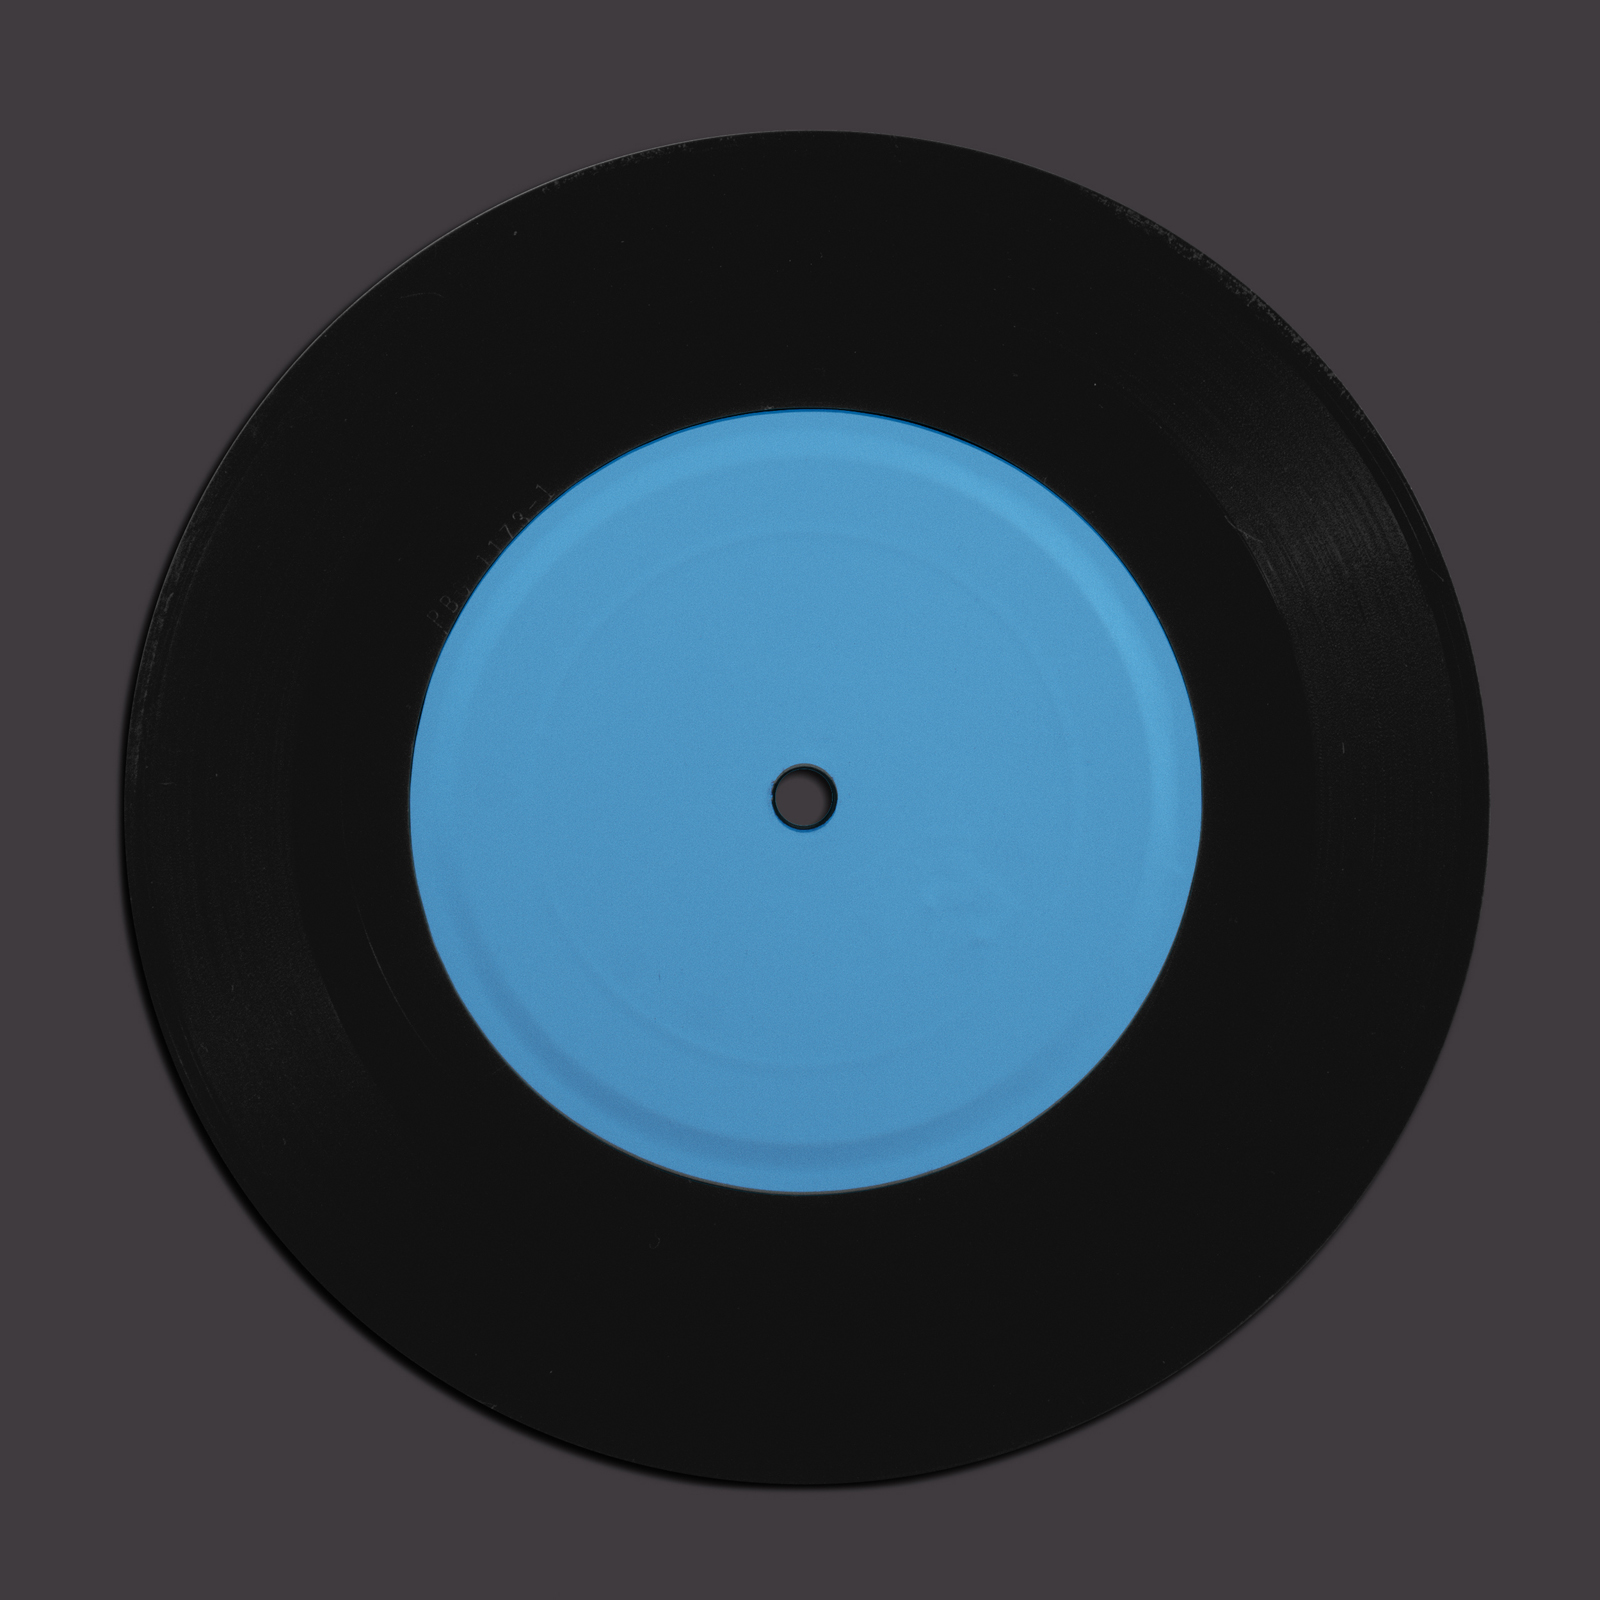 The Vinyl Record Mockup Templates Get an Upgrade! - Go ...